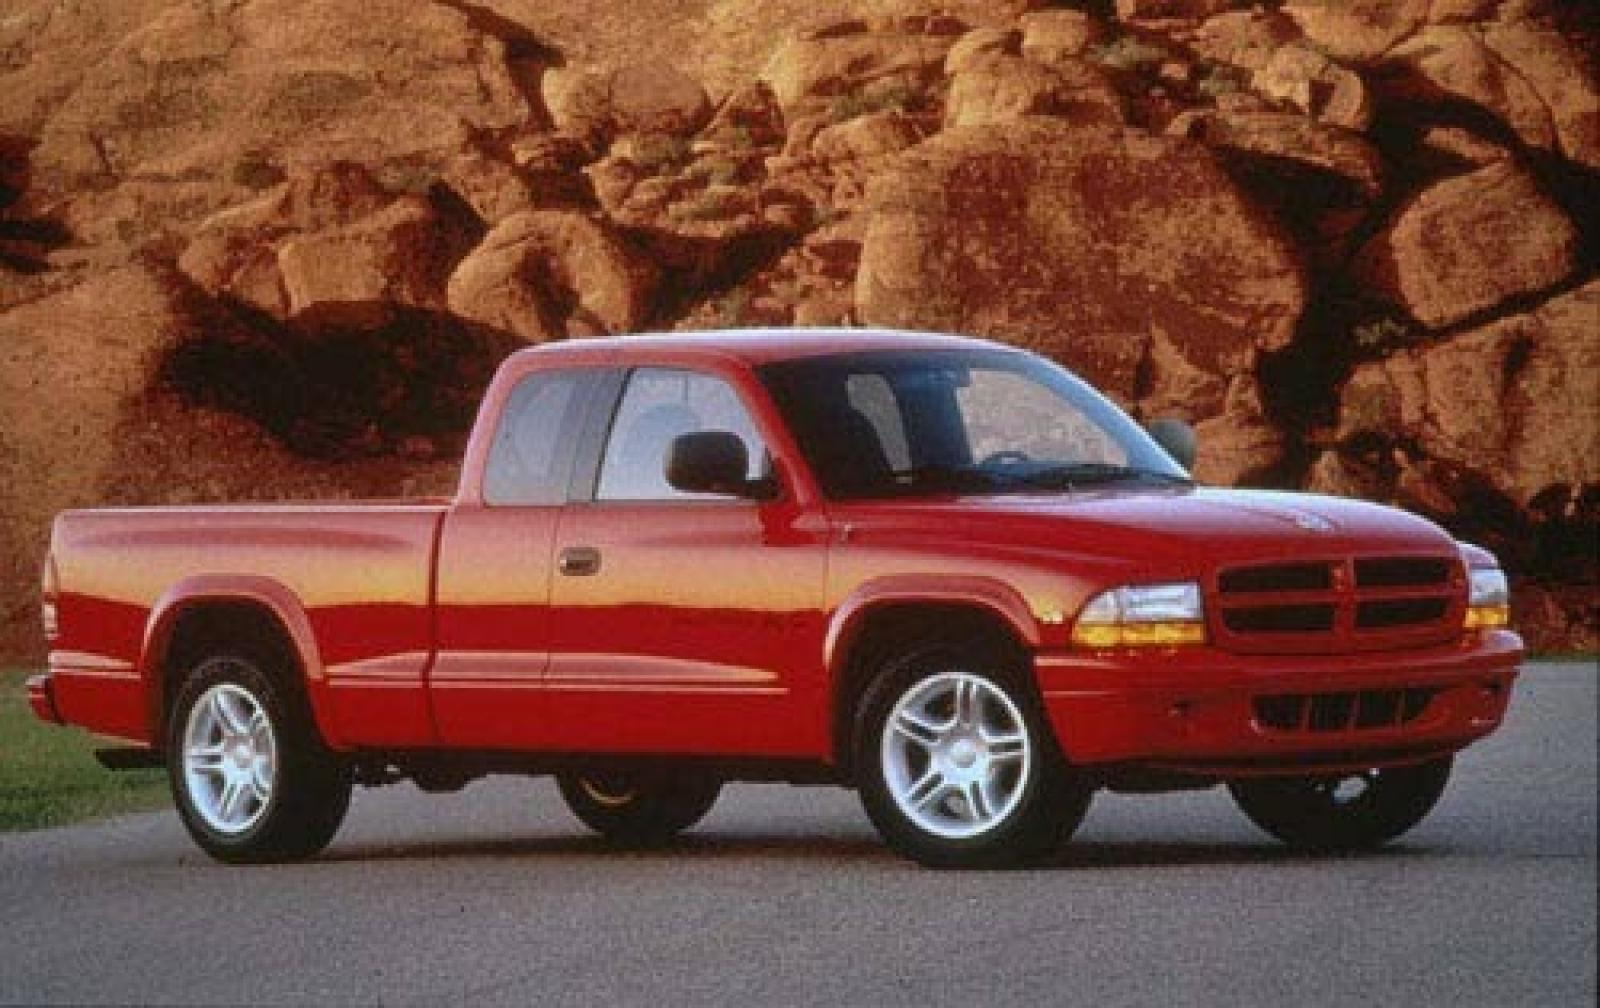 1999 dodge dakota information and photos zombiedrive. Black Bedroom Furniture Sets. Home Design Ideas